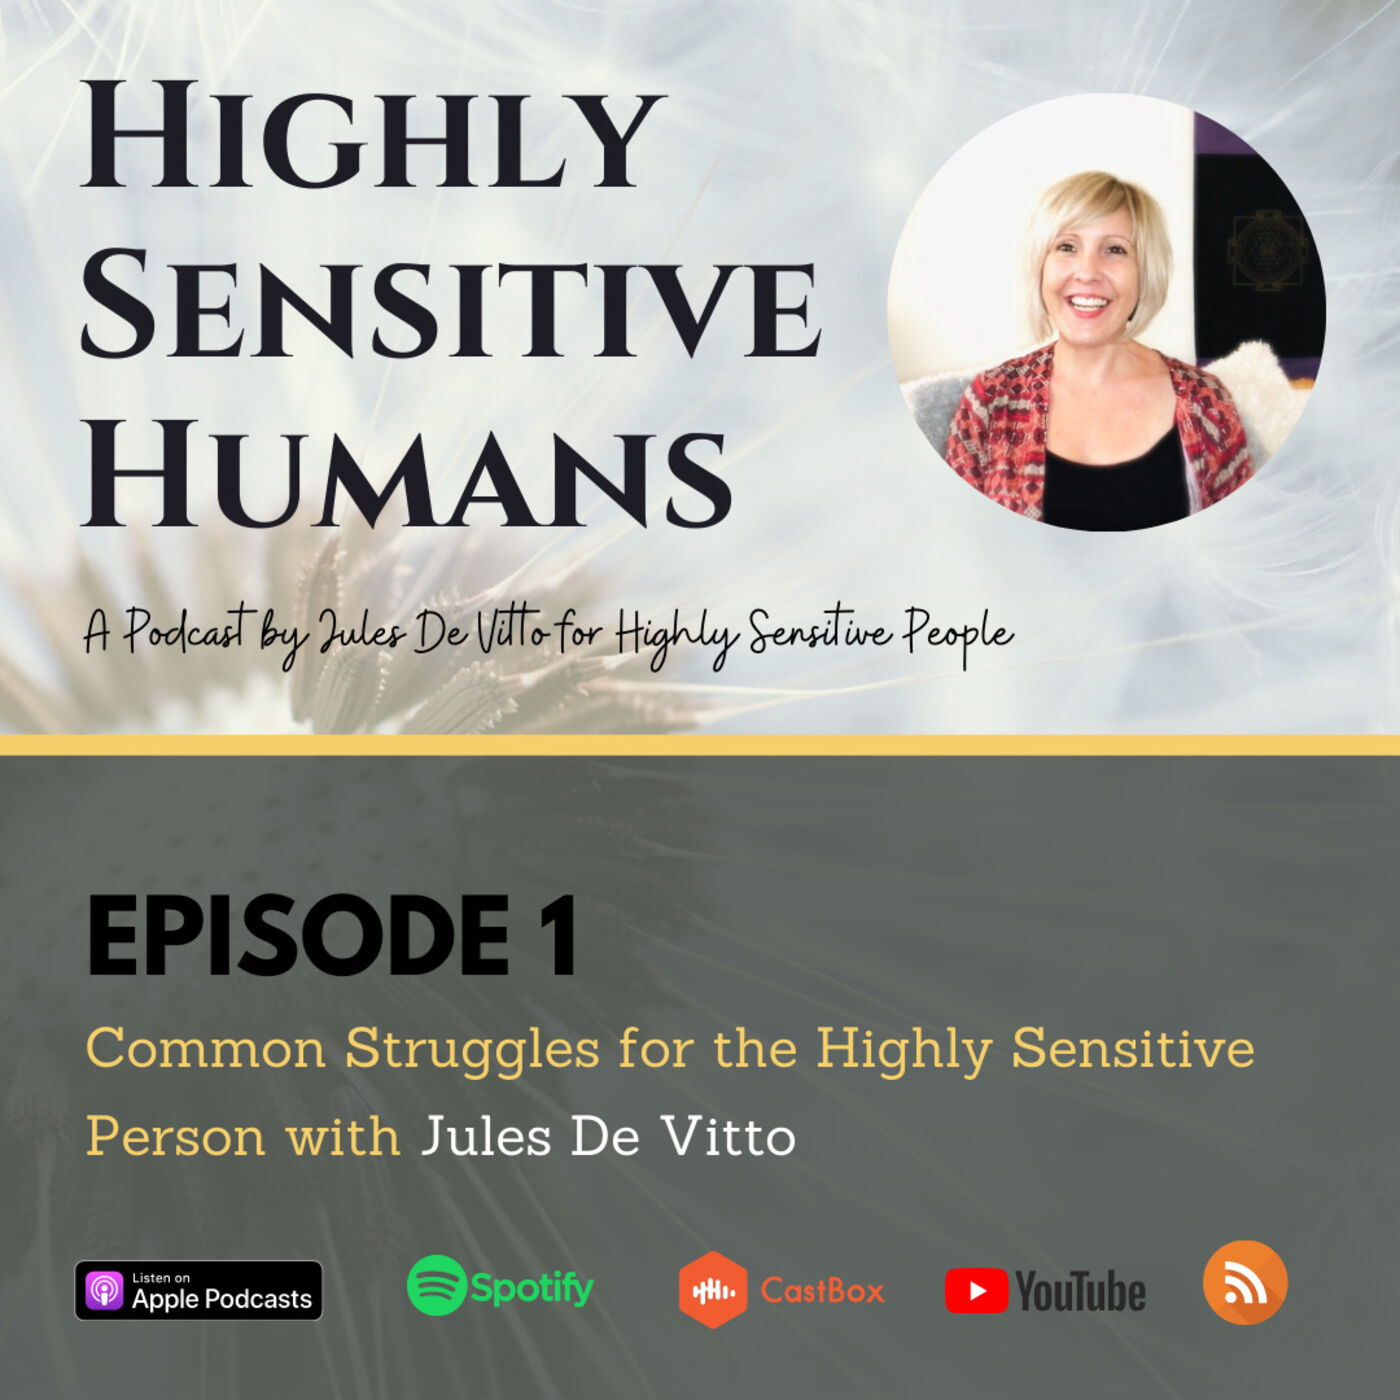 Common Struggles for the Highly Sensitive Person